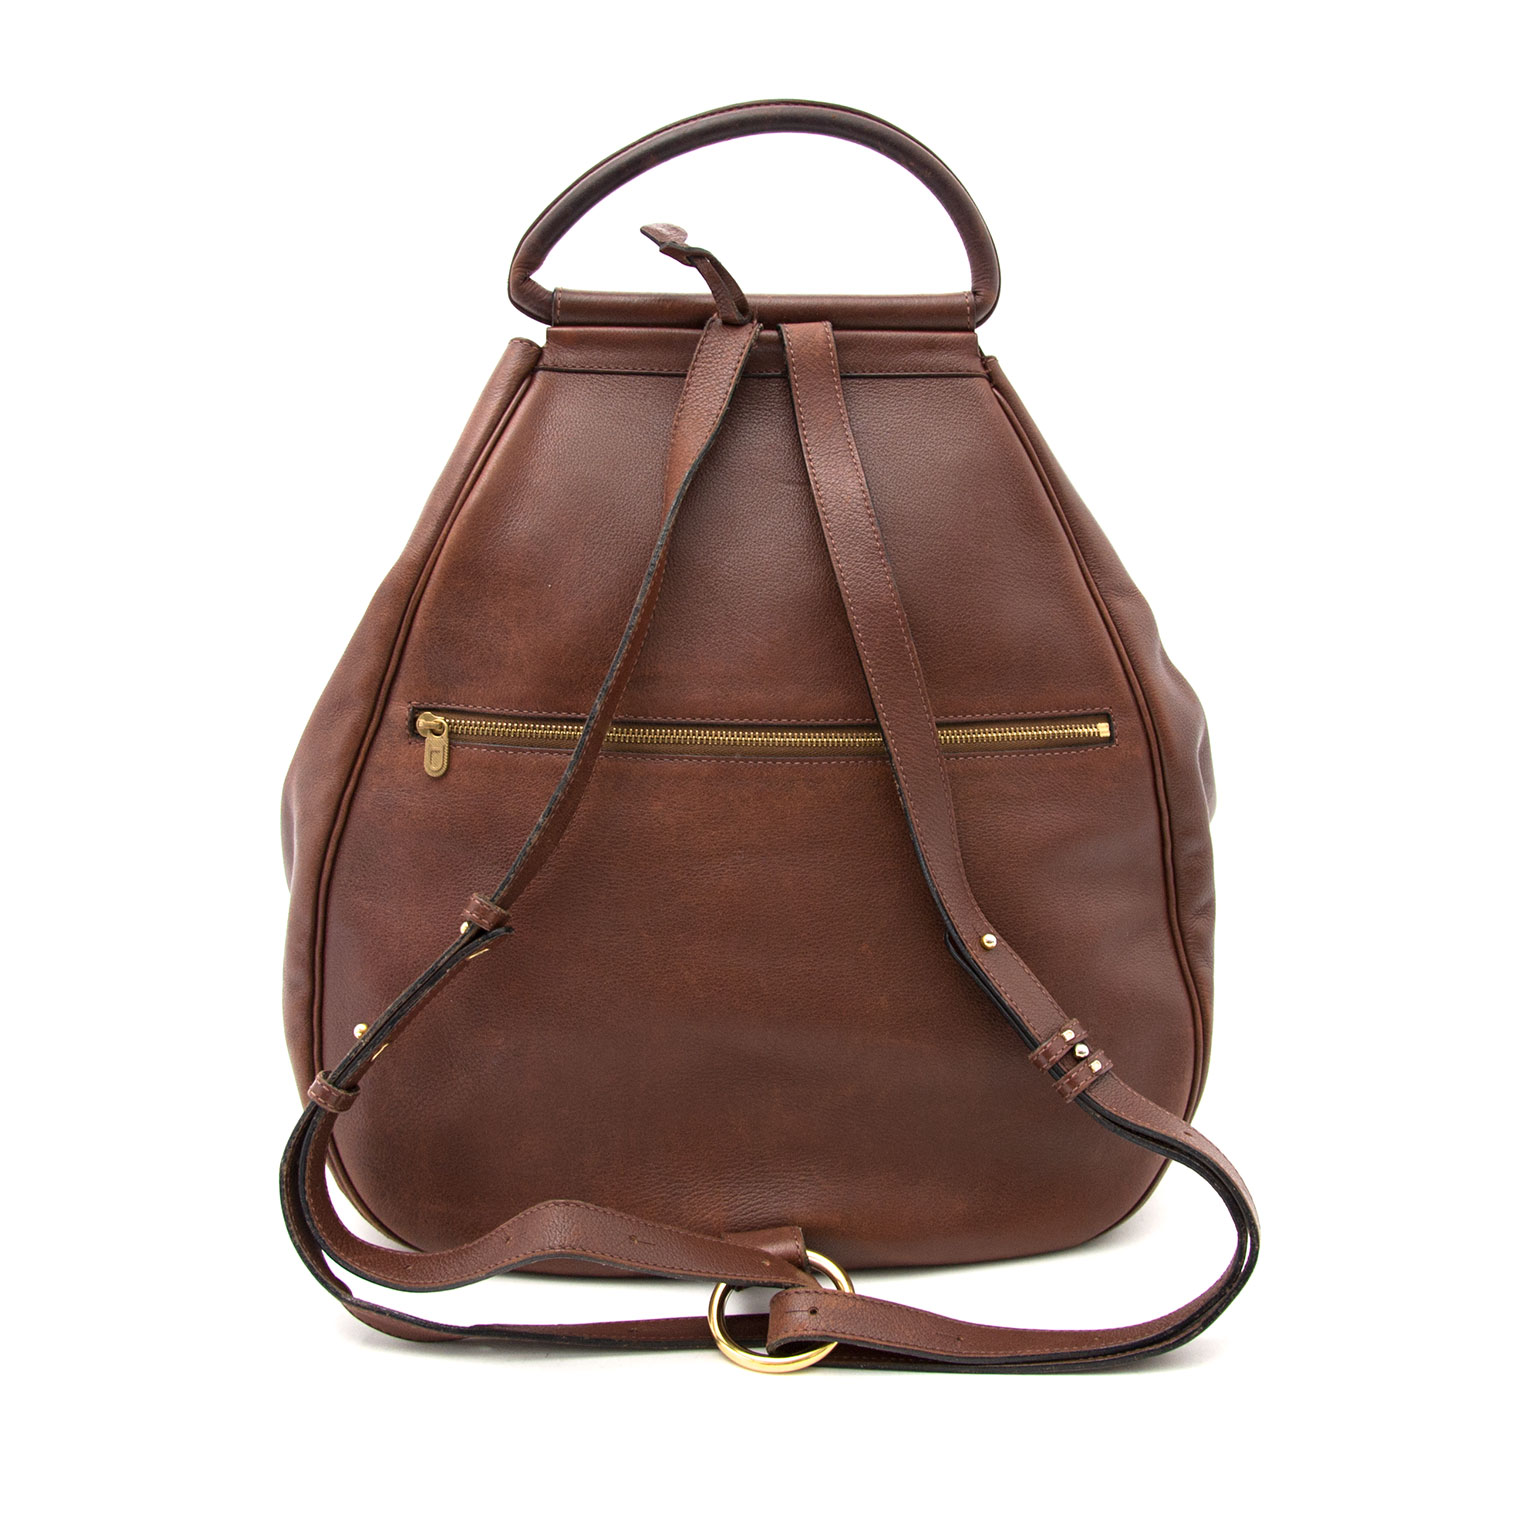 Authentic Delvaux Brown Lucifer Backpack Bag at the right price at Labellov.com